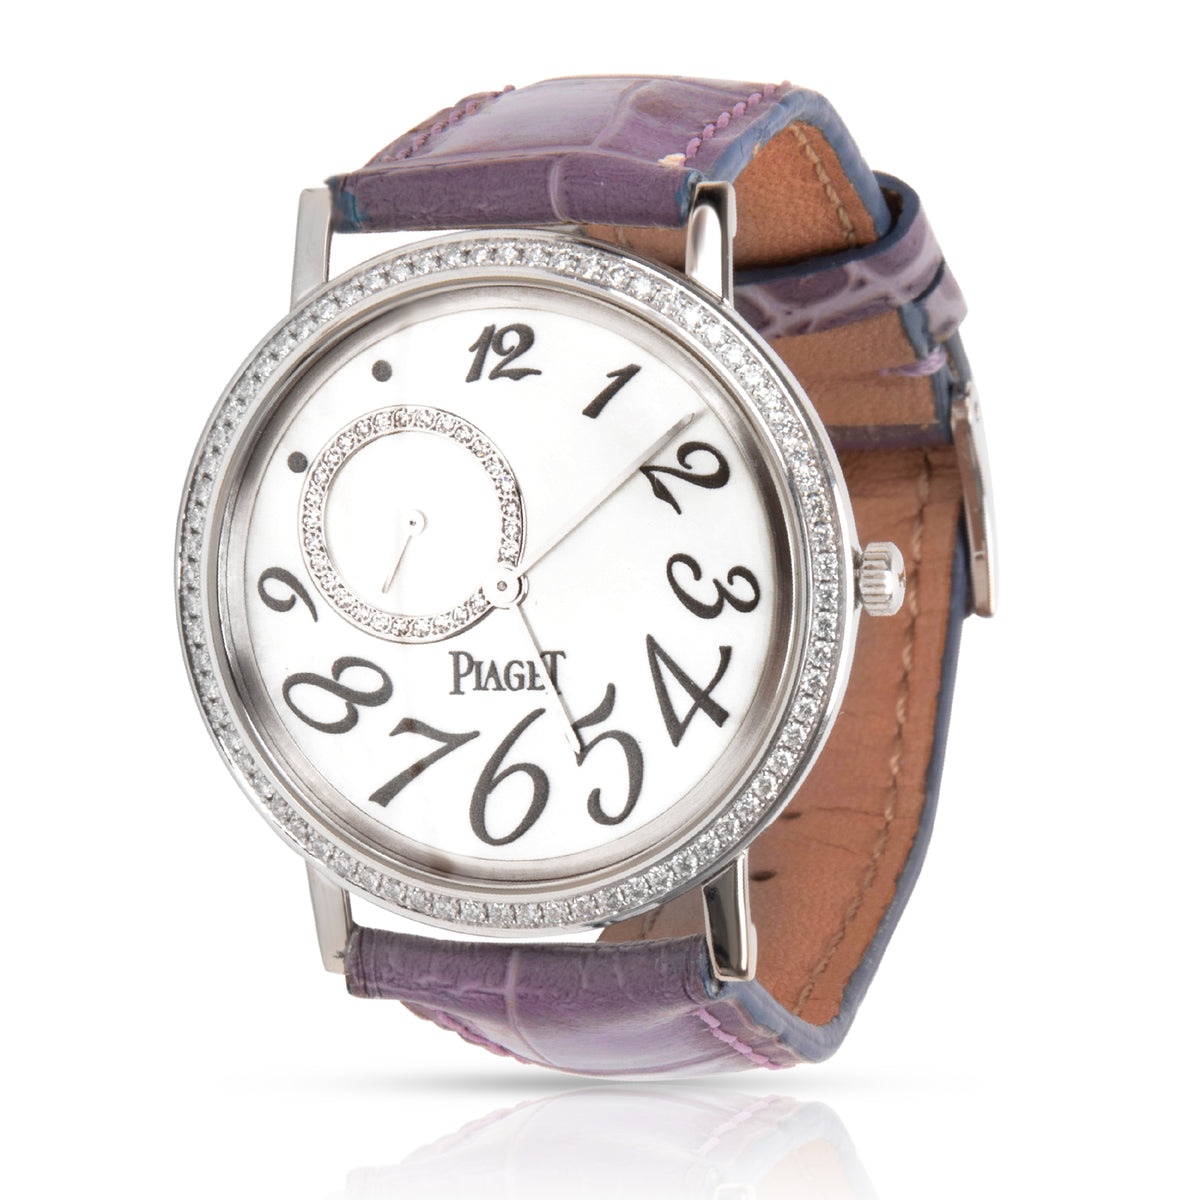 Piaget Altiplano GOA31106 Women's Watch in 18kt White Gold